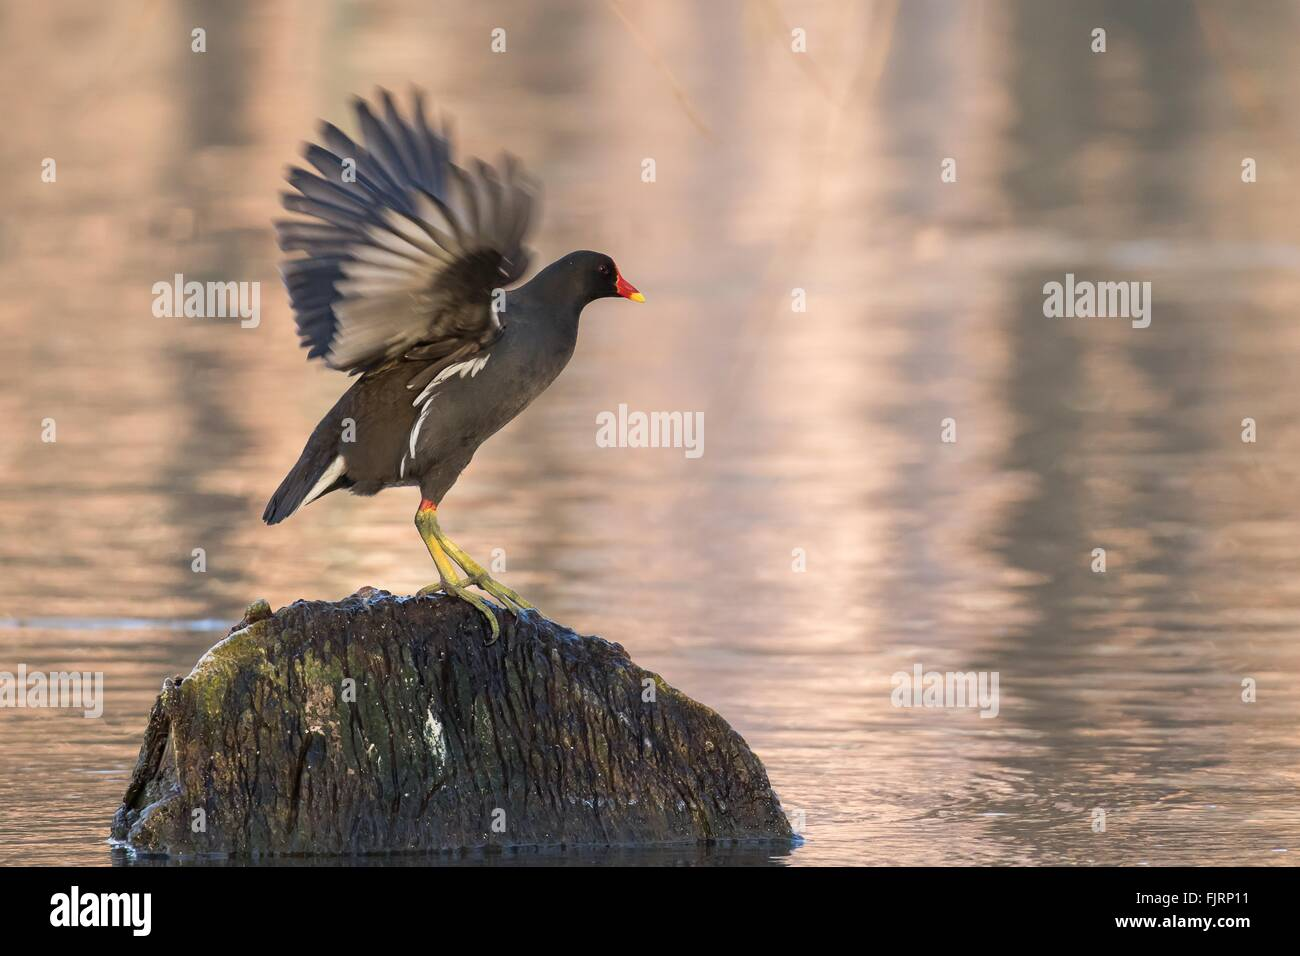 Moorhen (Gallinula chloropus) on the outlook on a stump in the water flapping its wings, Hesse, Germany - Stock Image